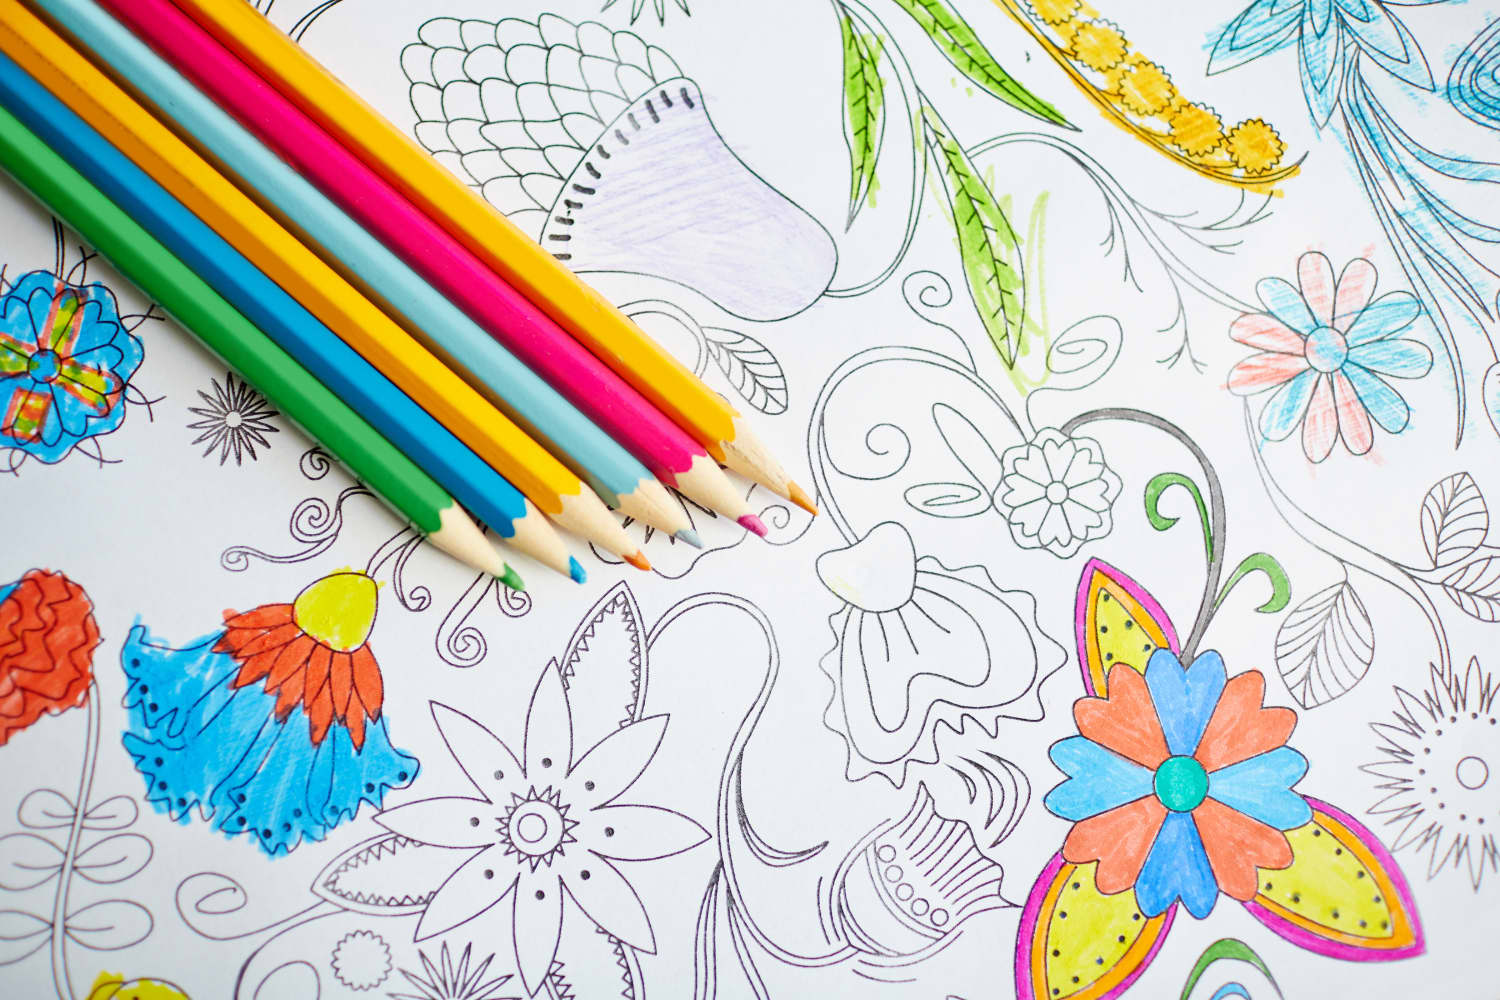 117 Museums Have Made Thousands of Coloring Book Pages Free To Download